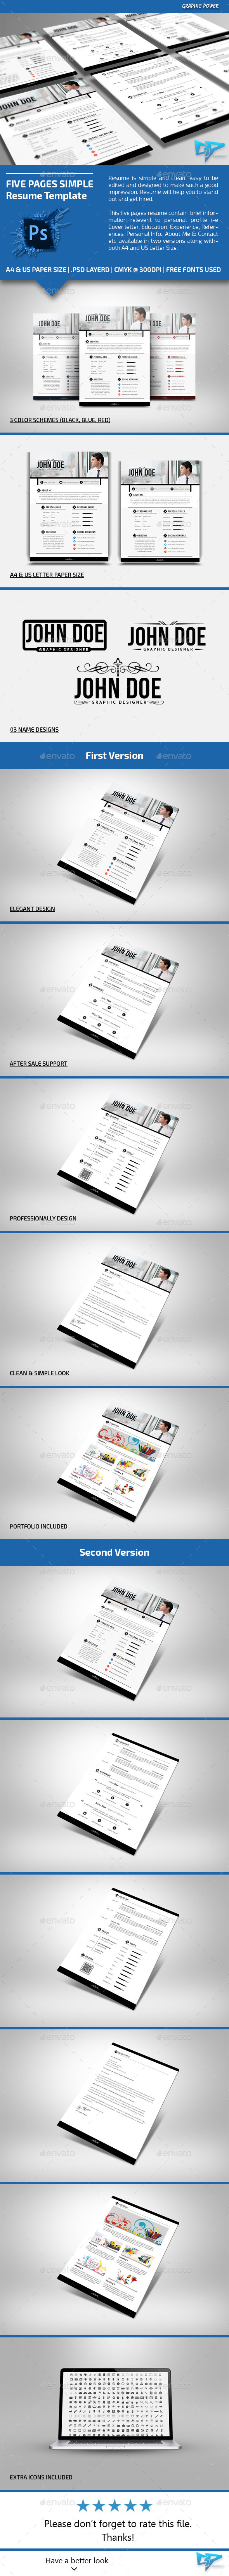 This Clean Resume  Cv Files Are Designed In Adobe Photoshop